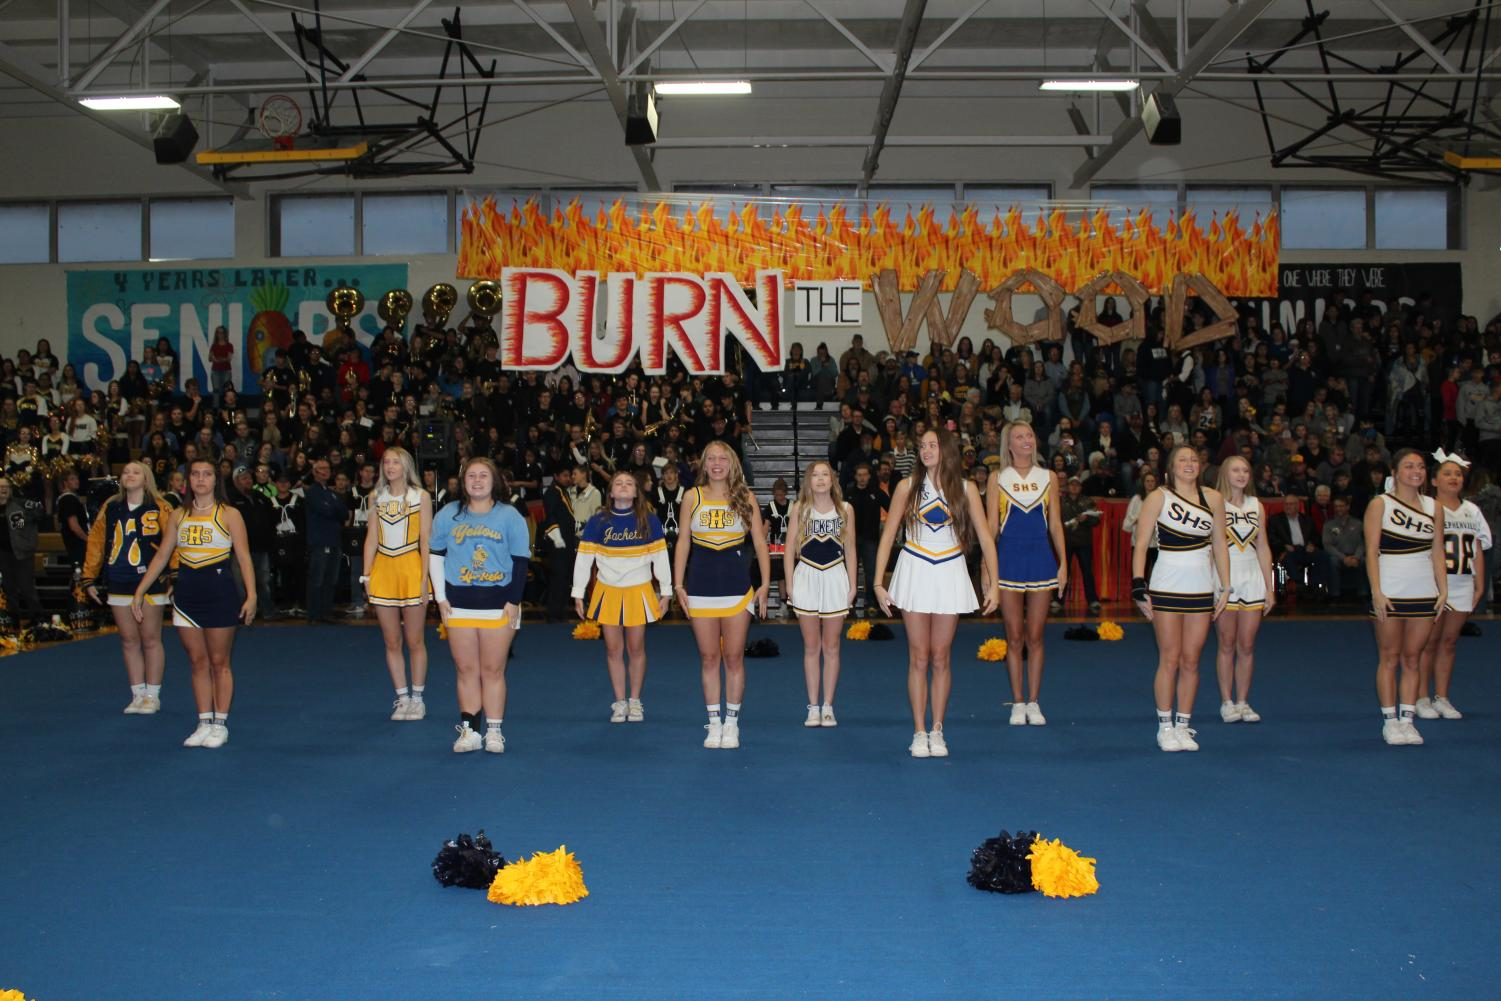 Students rev up the crowd at the Throw Back Pep Rally for the 'Burn the Wood' game.